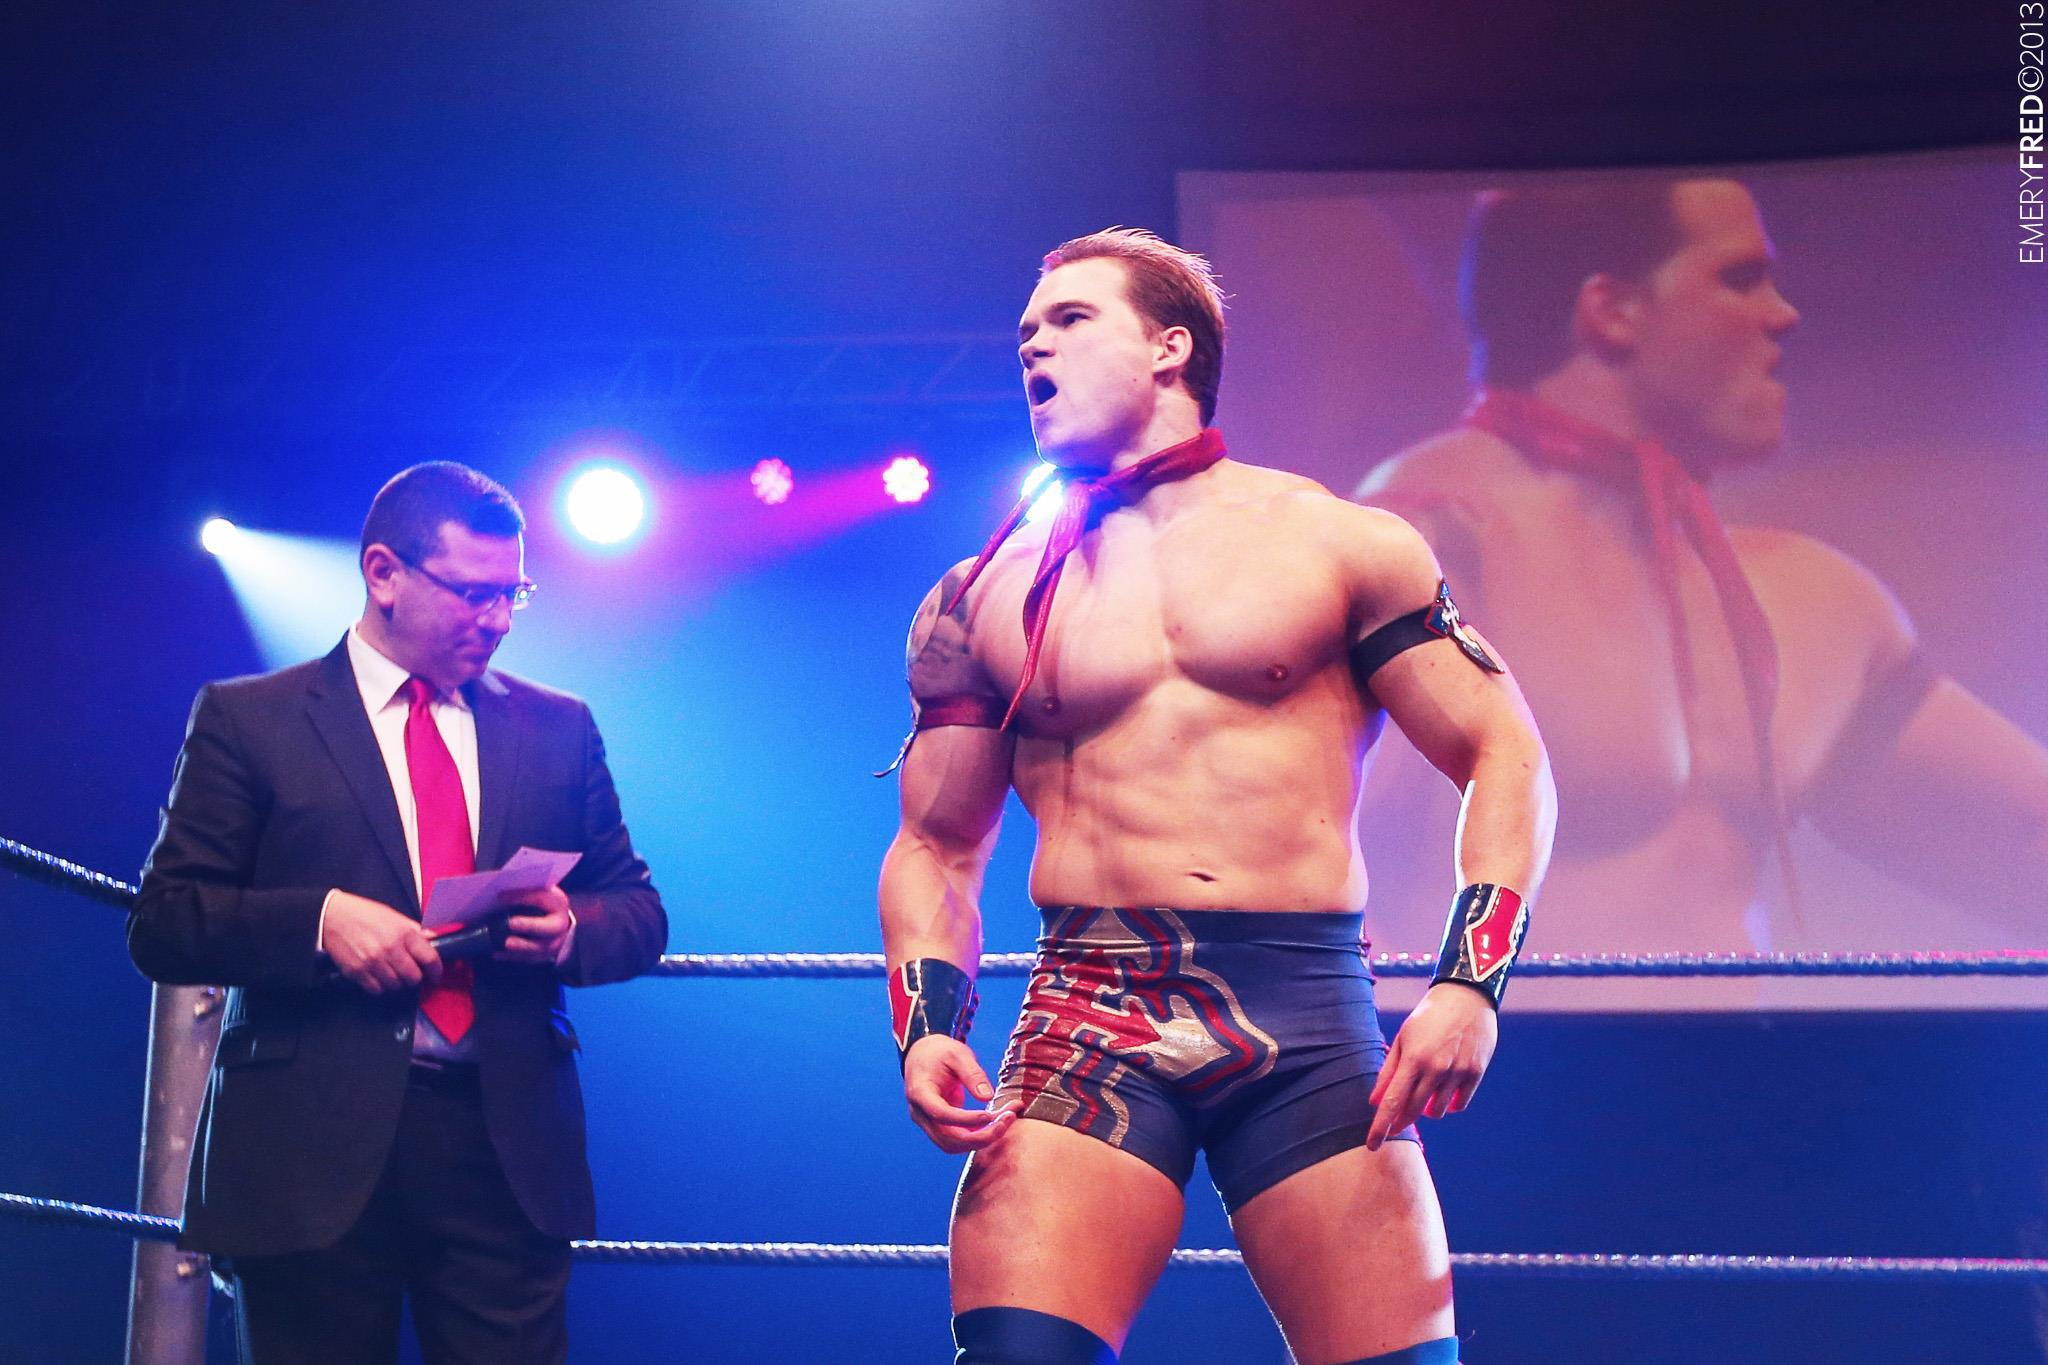 pro wrestling Breaking news, interviews, play-by-play, videos, and wrestling analysis, covering wwe, tna, and ring of honor, from wrestlezone.